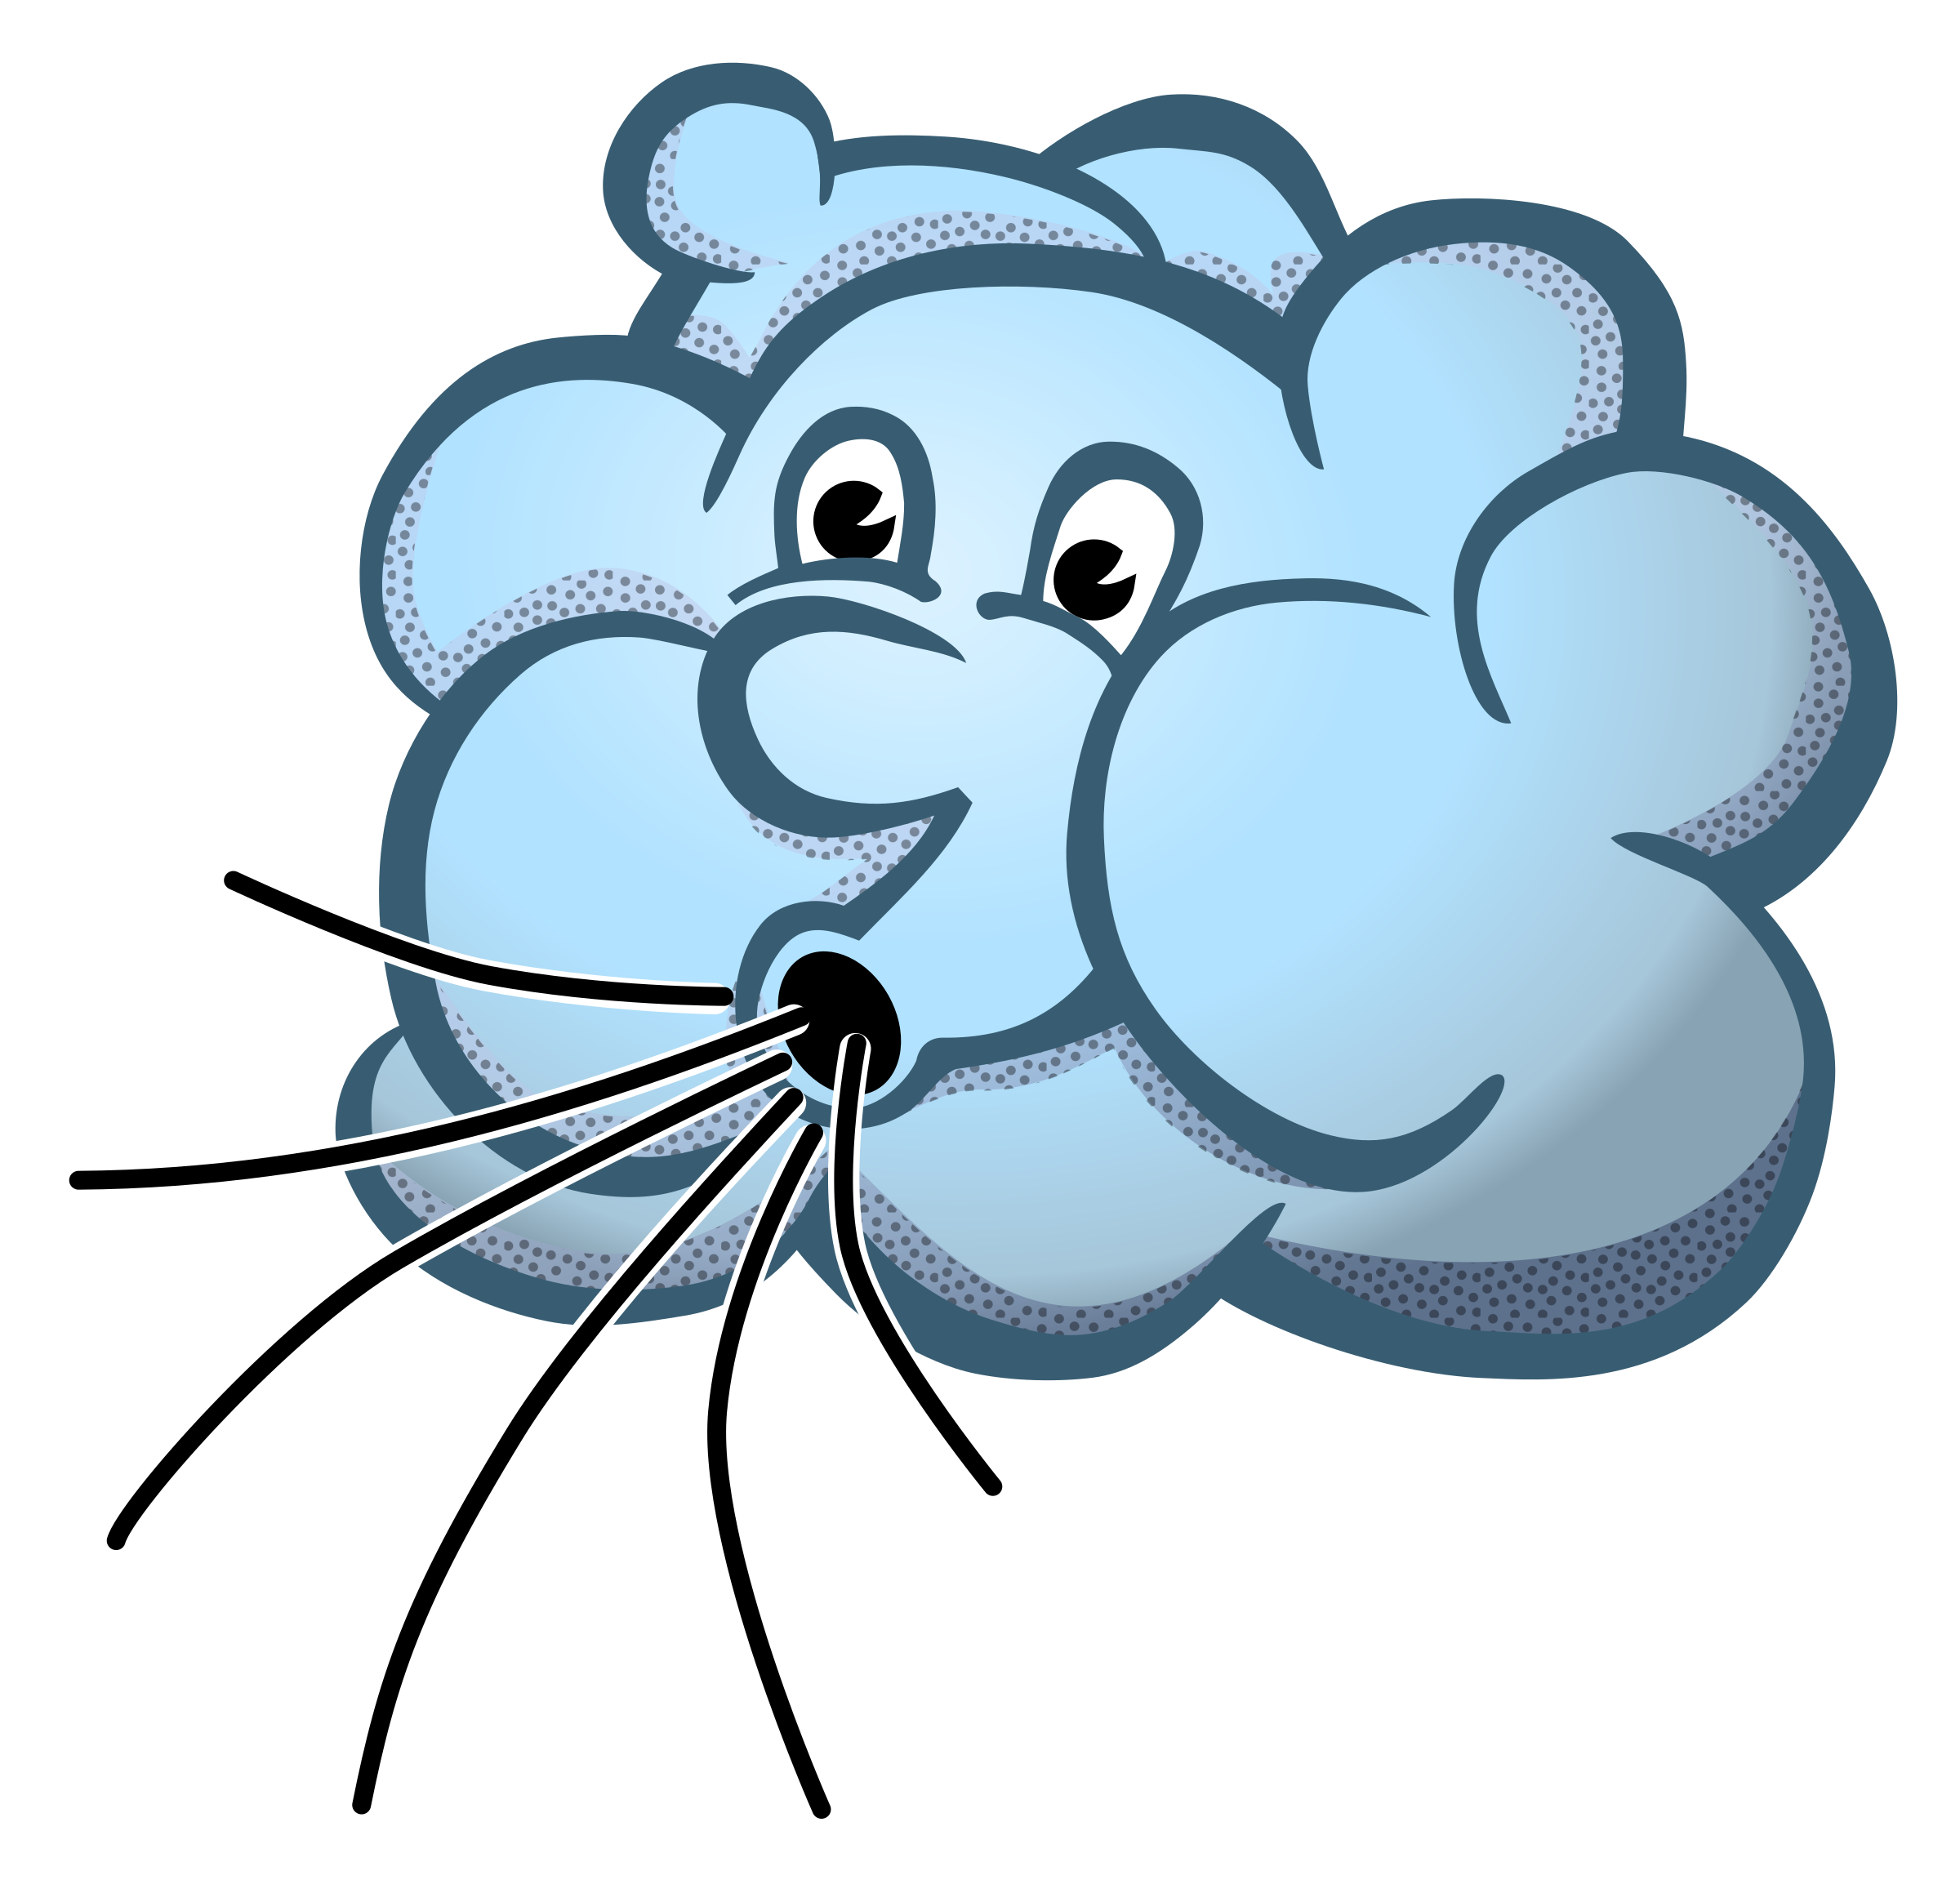 Tree clipart wind blowing #3